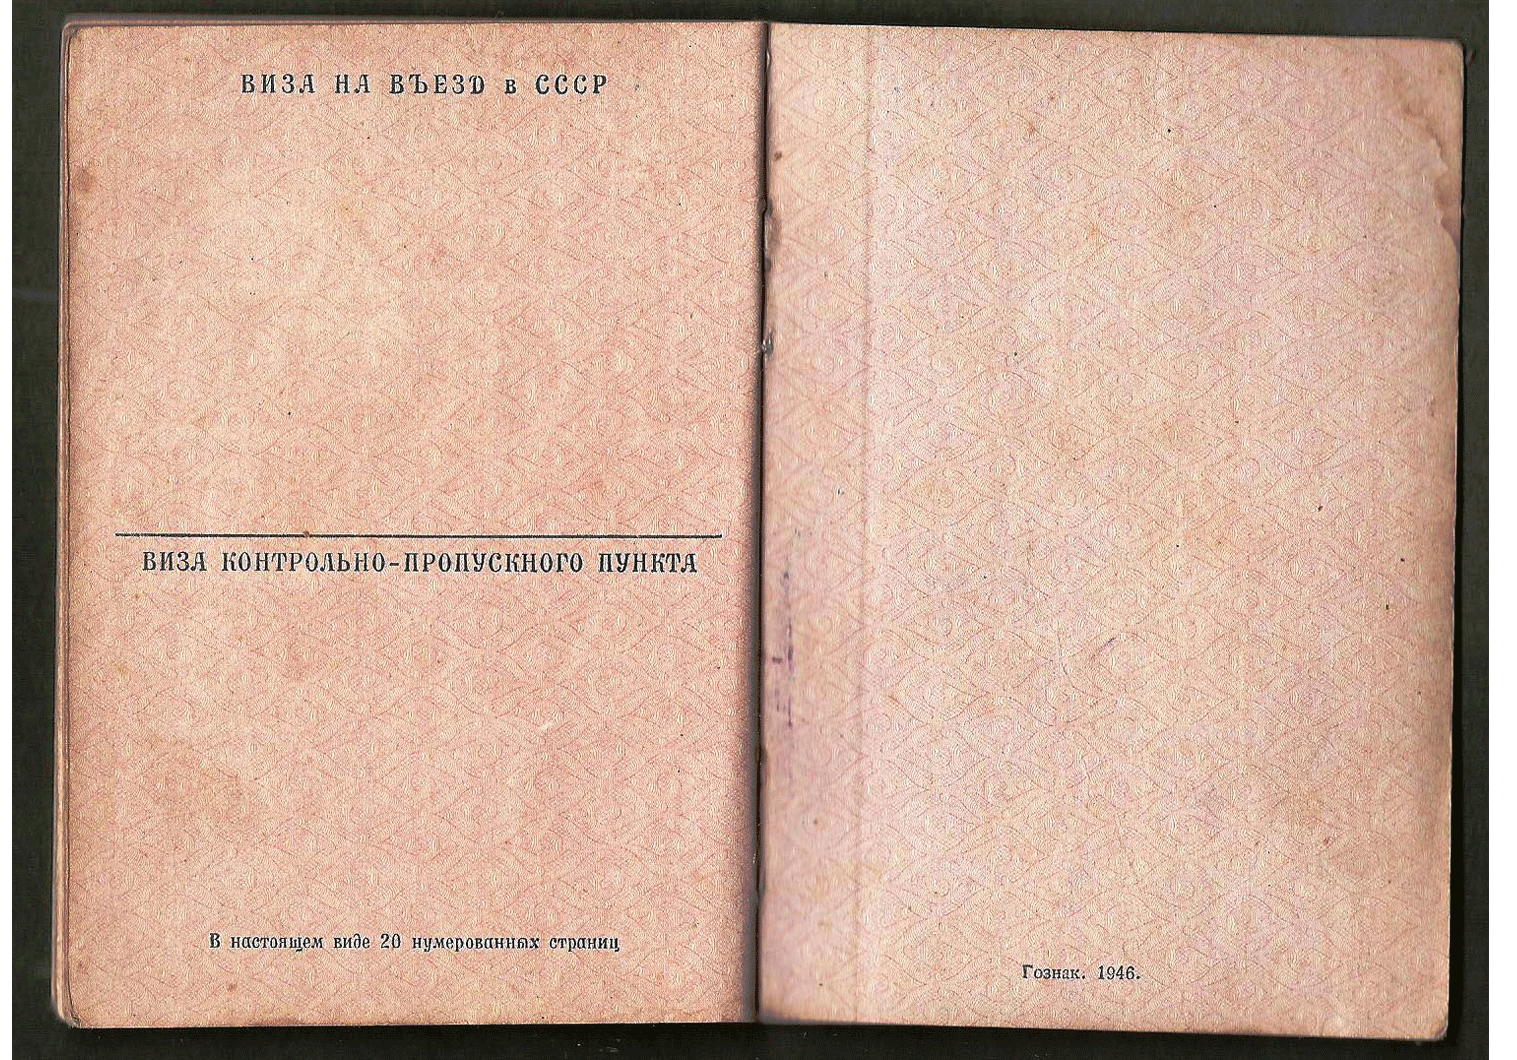 WW2 Soviet passport